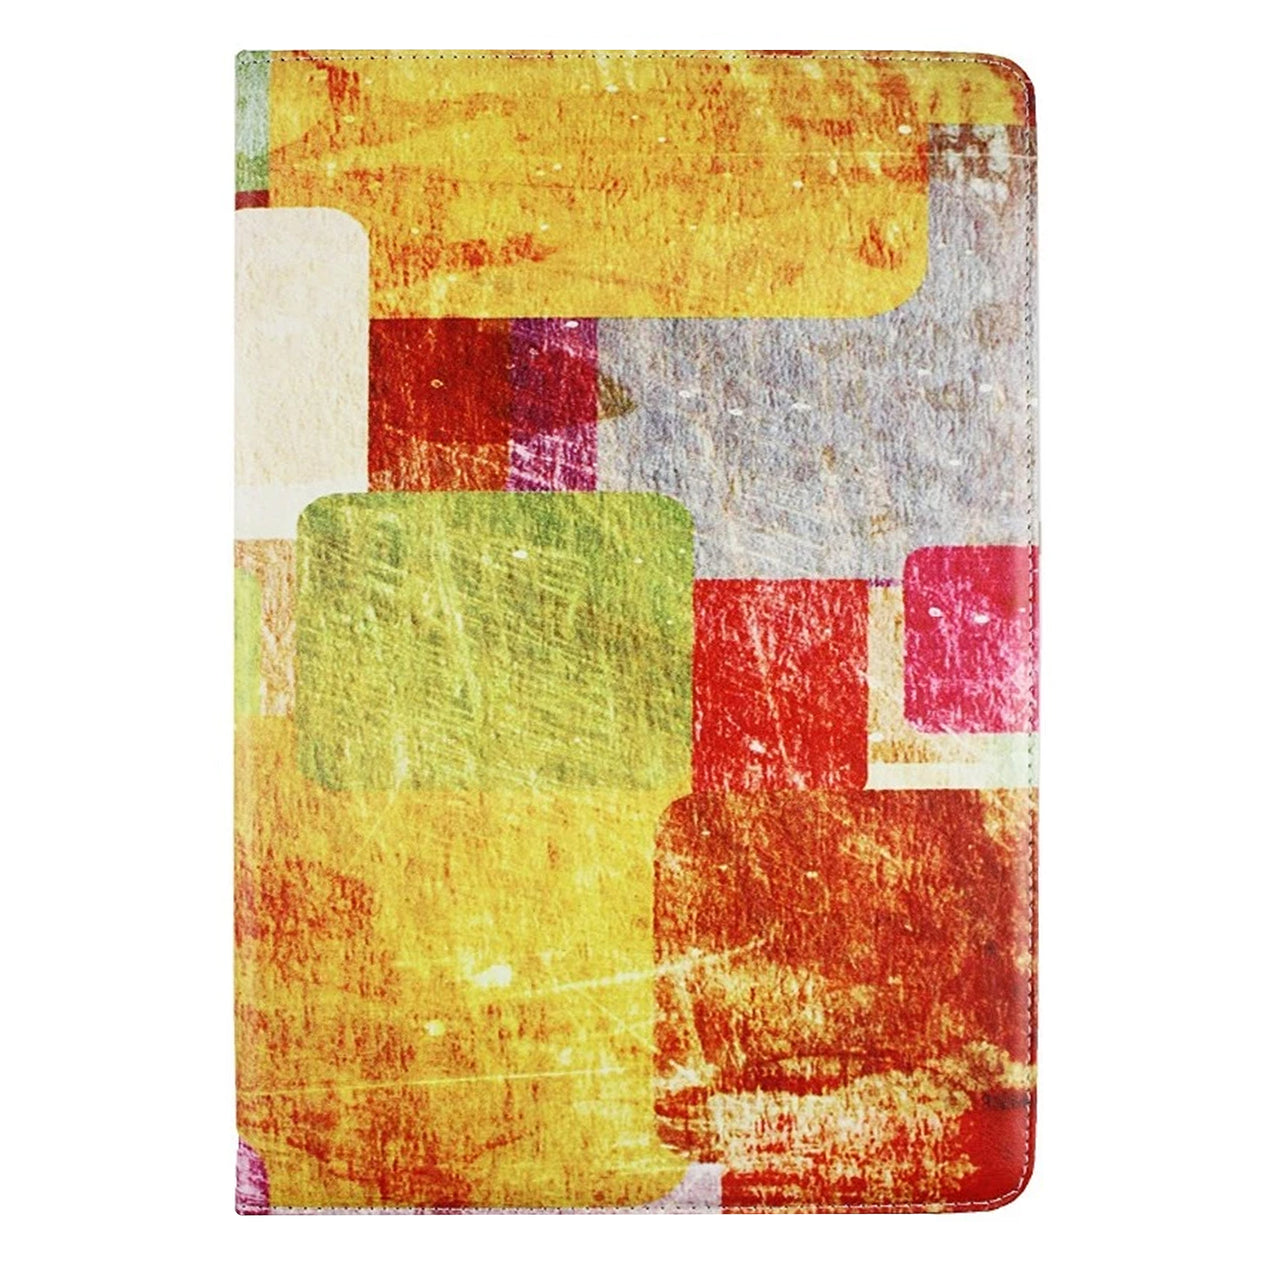 Universal Tablet Case - Colored Tiles